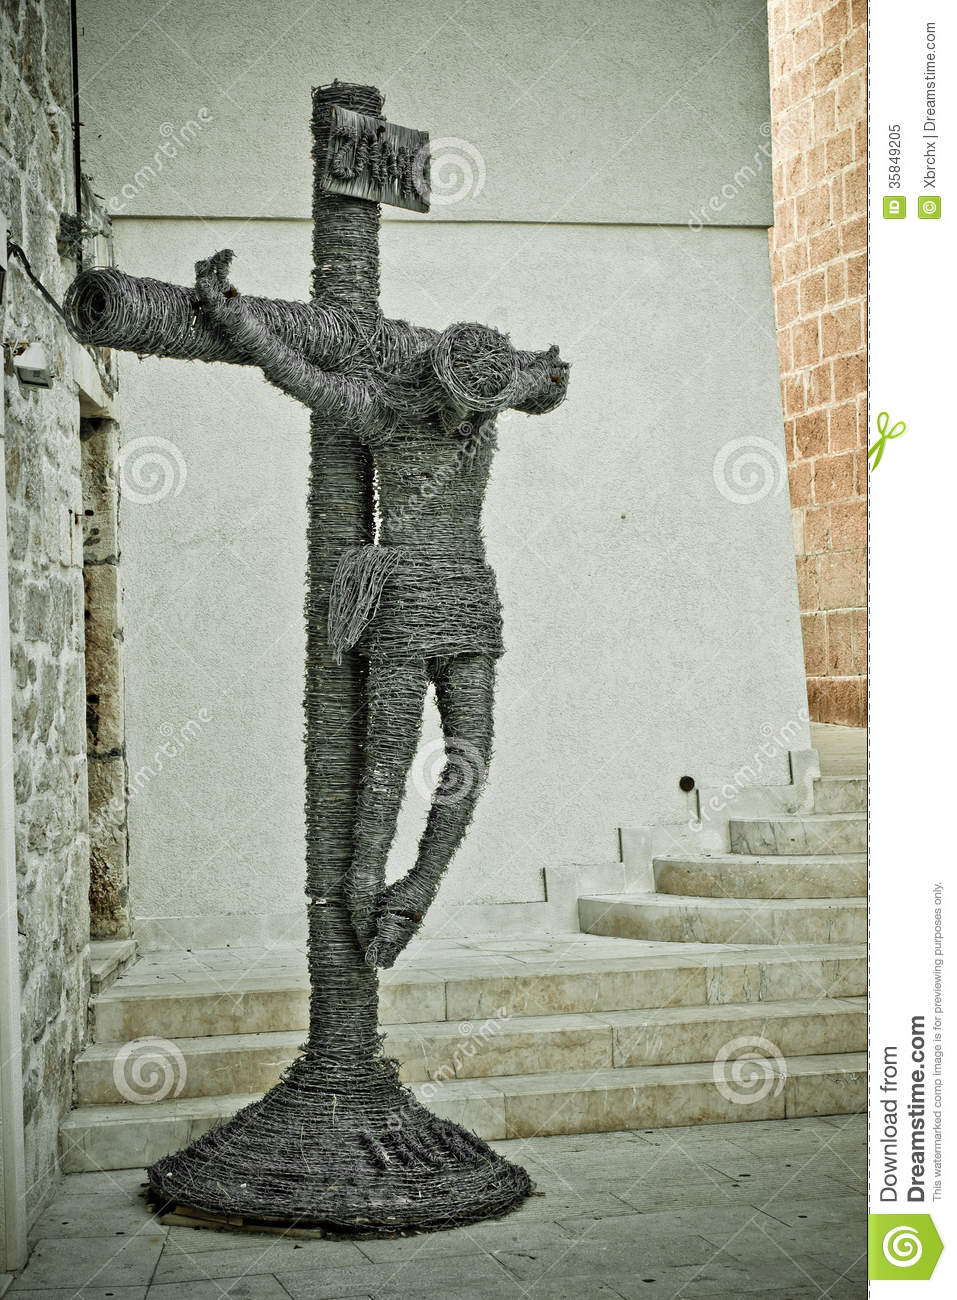 Barb Wire Jesus Christ Crucifixion Stock Image - Image of church ...